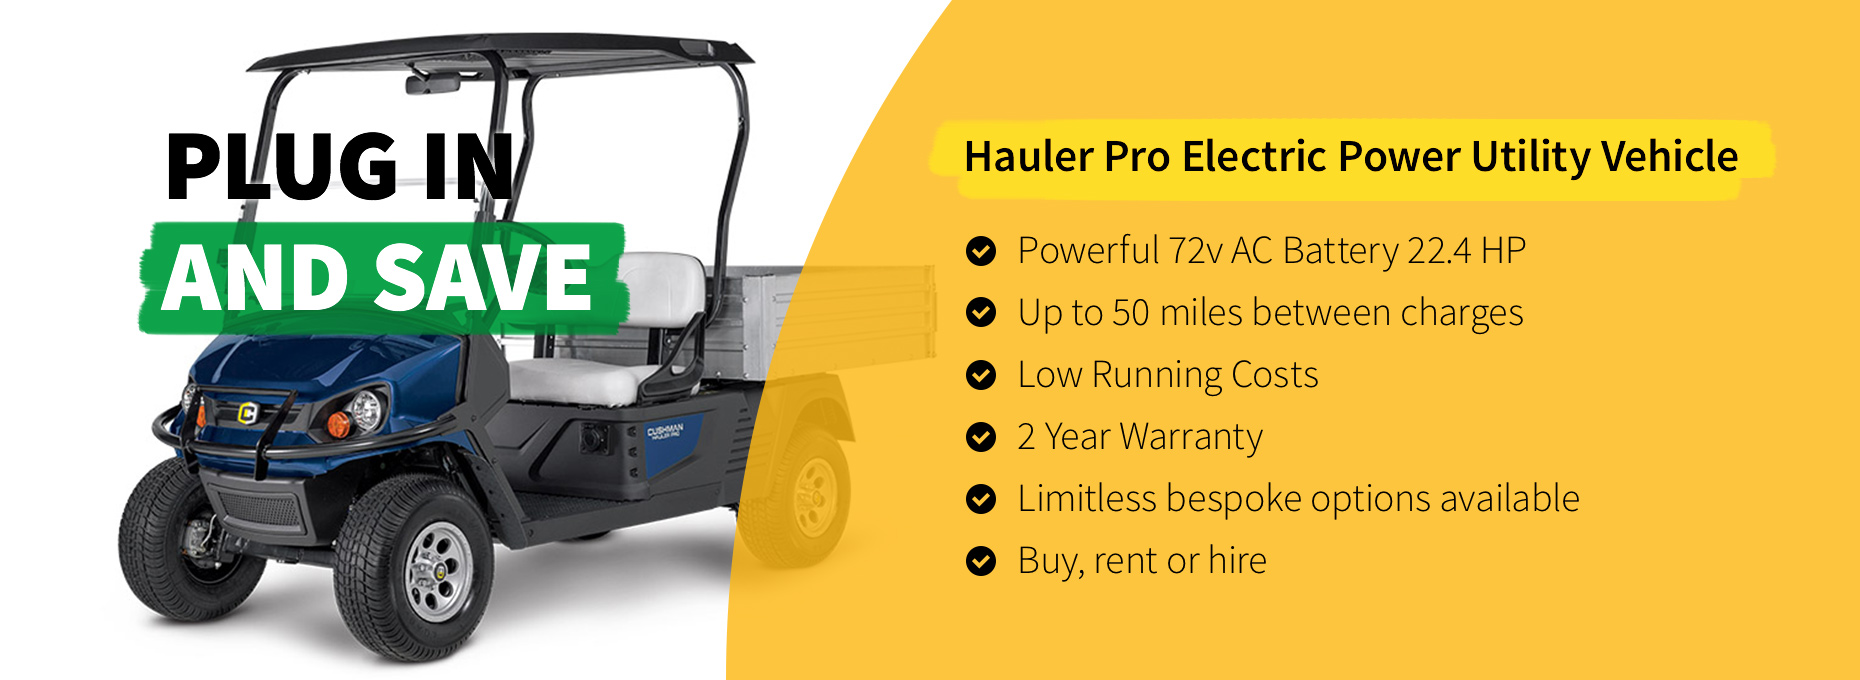 Hauler Pro Electric Power Utility Vehicle